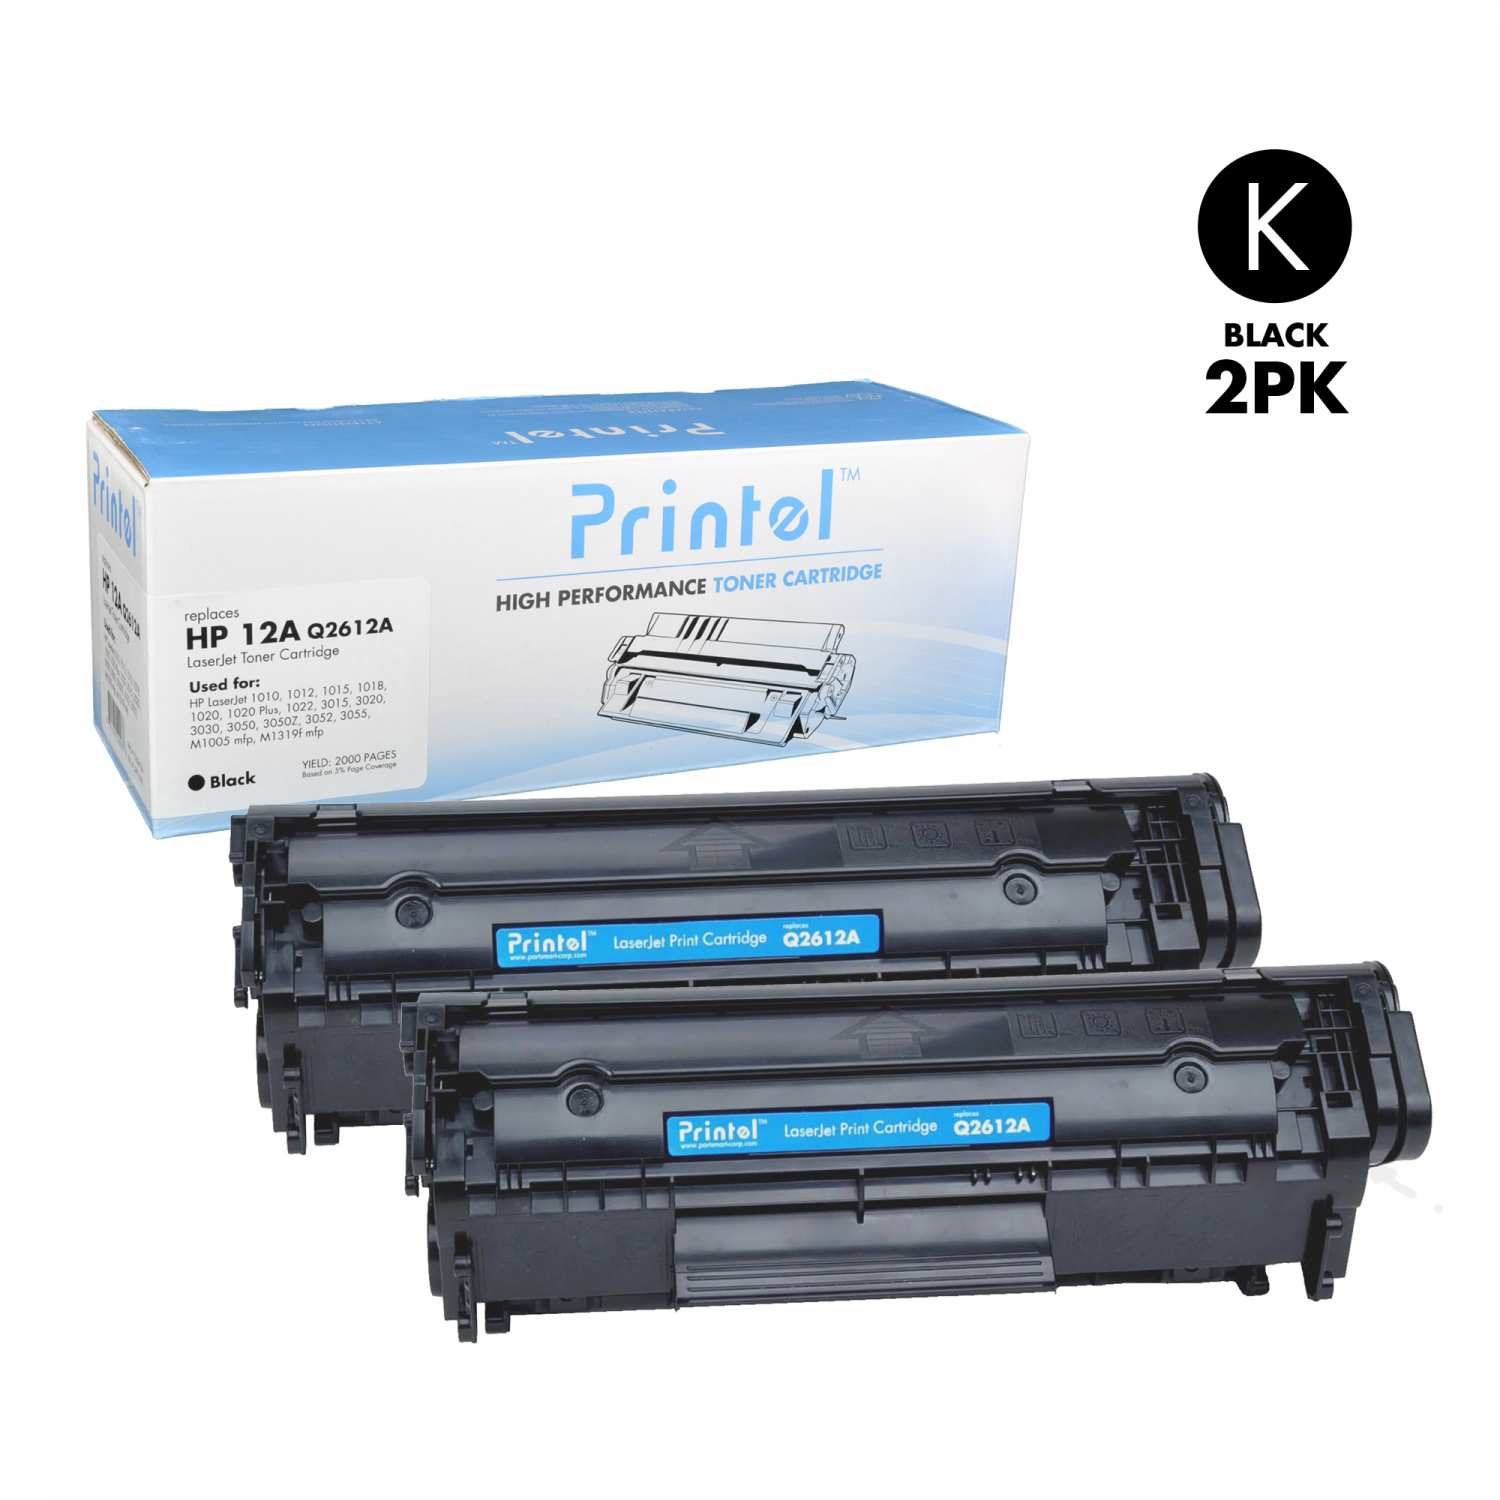 Replacement LaserJet Toner Cartridge for HP 12A (Q2612A) Black (2 Pack)